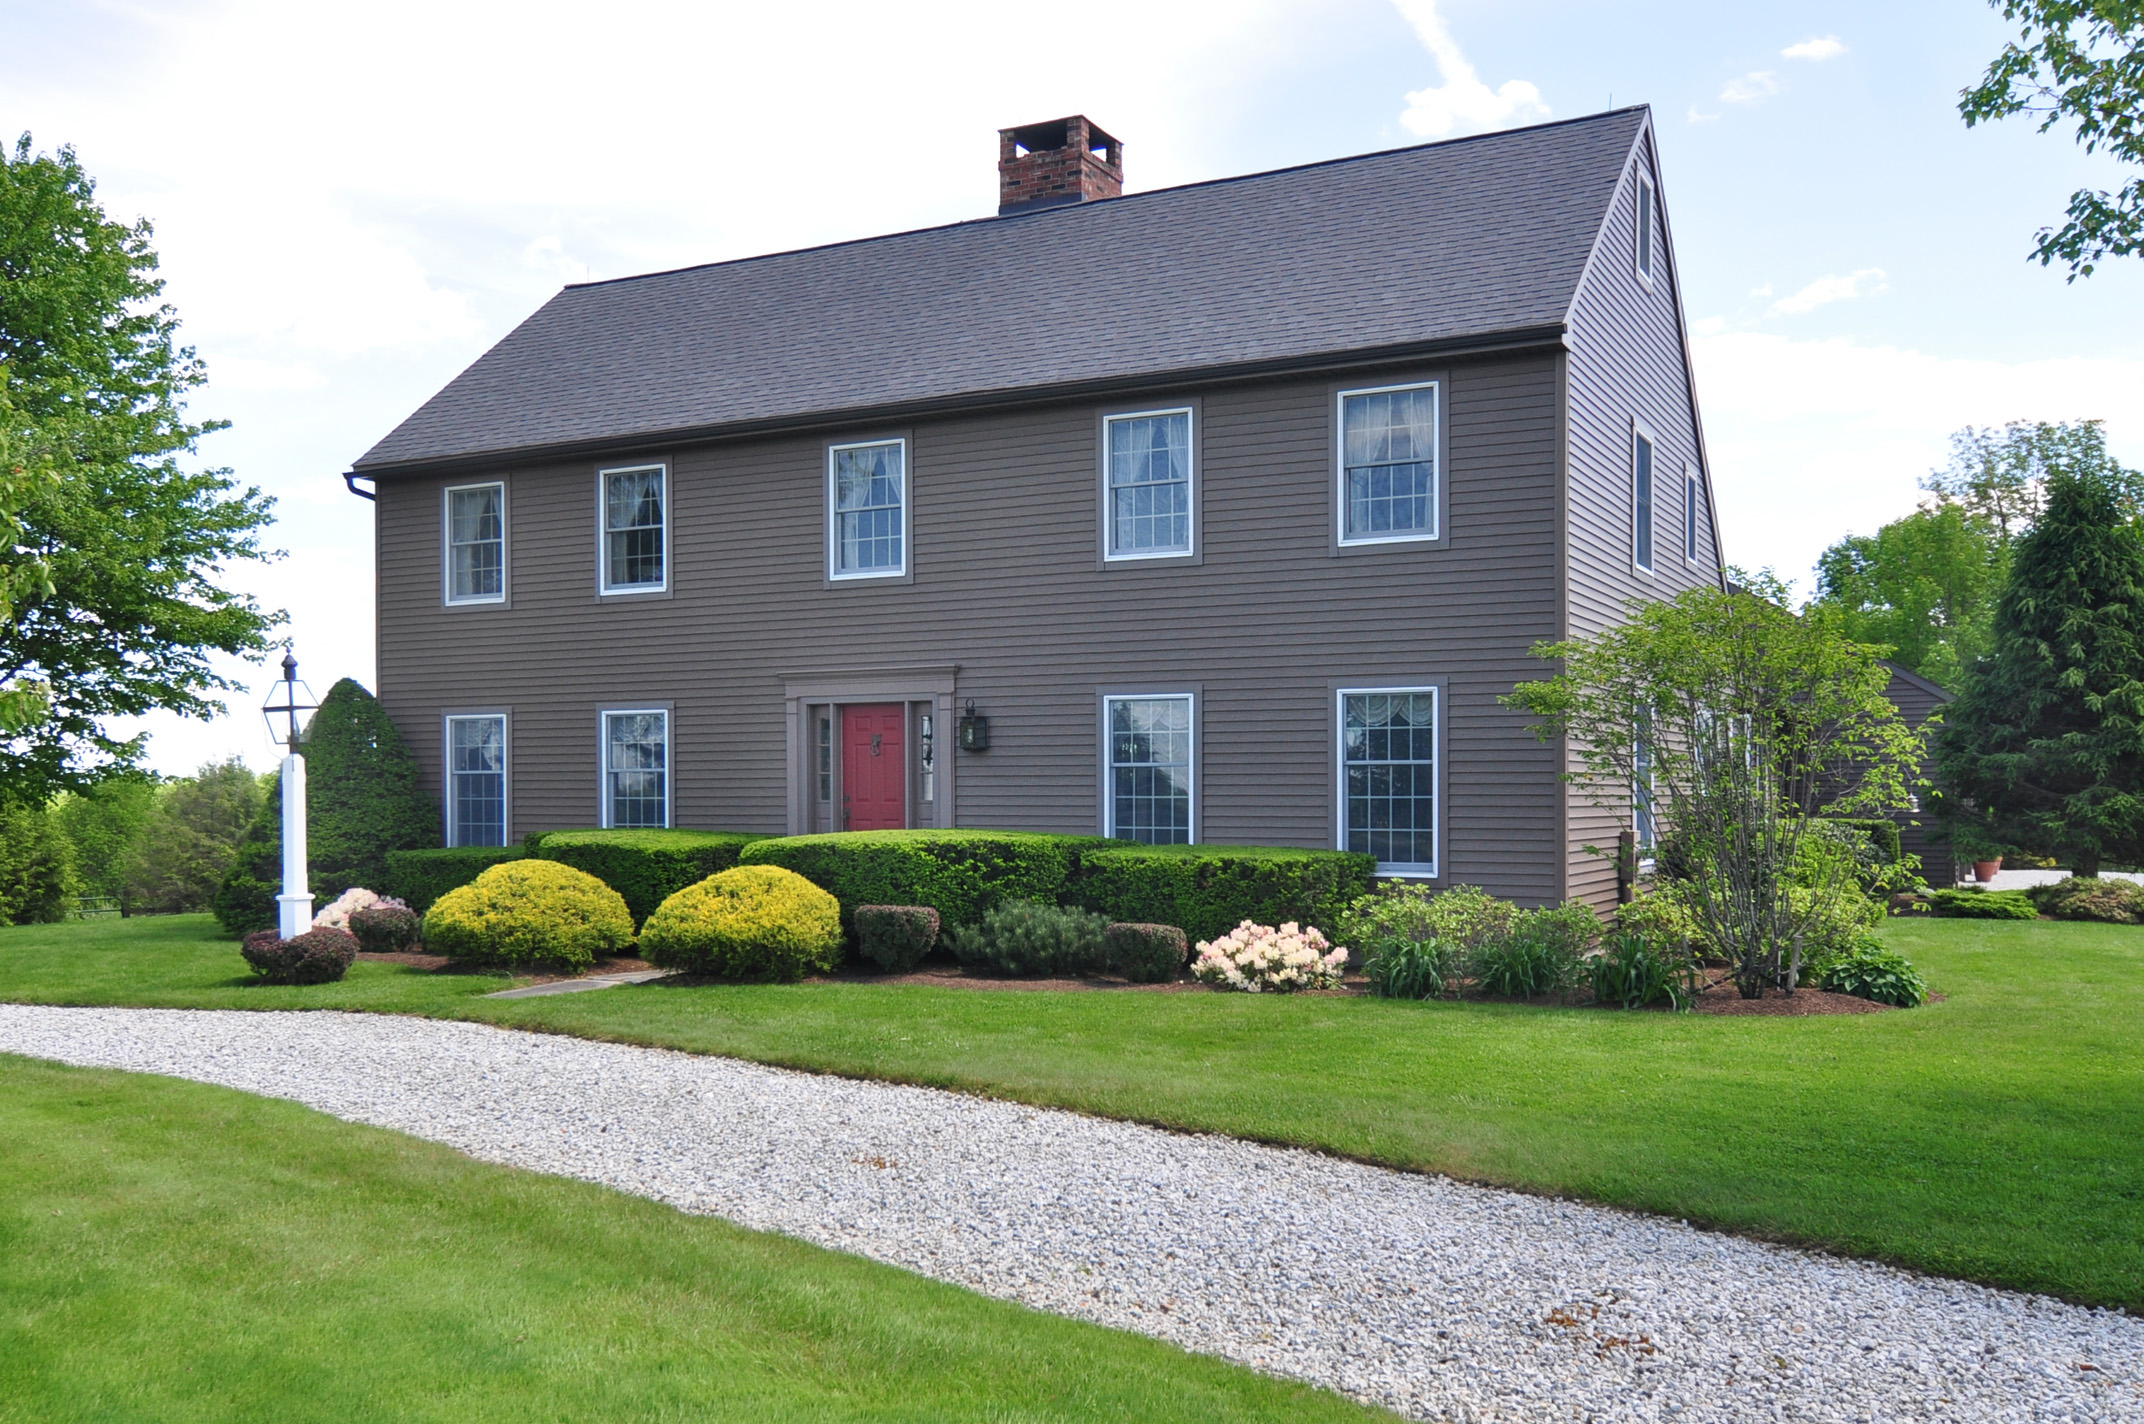 Single Family Home for Sale at Elegant Colonial with Views 72 Pie Hill Road Goshen, Connecticut, 06756 United States